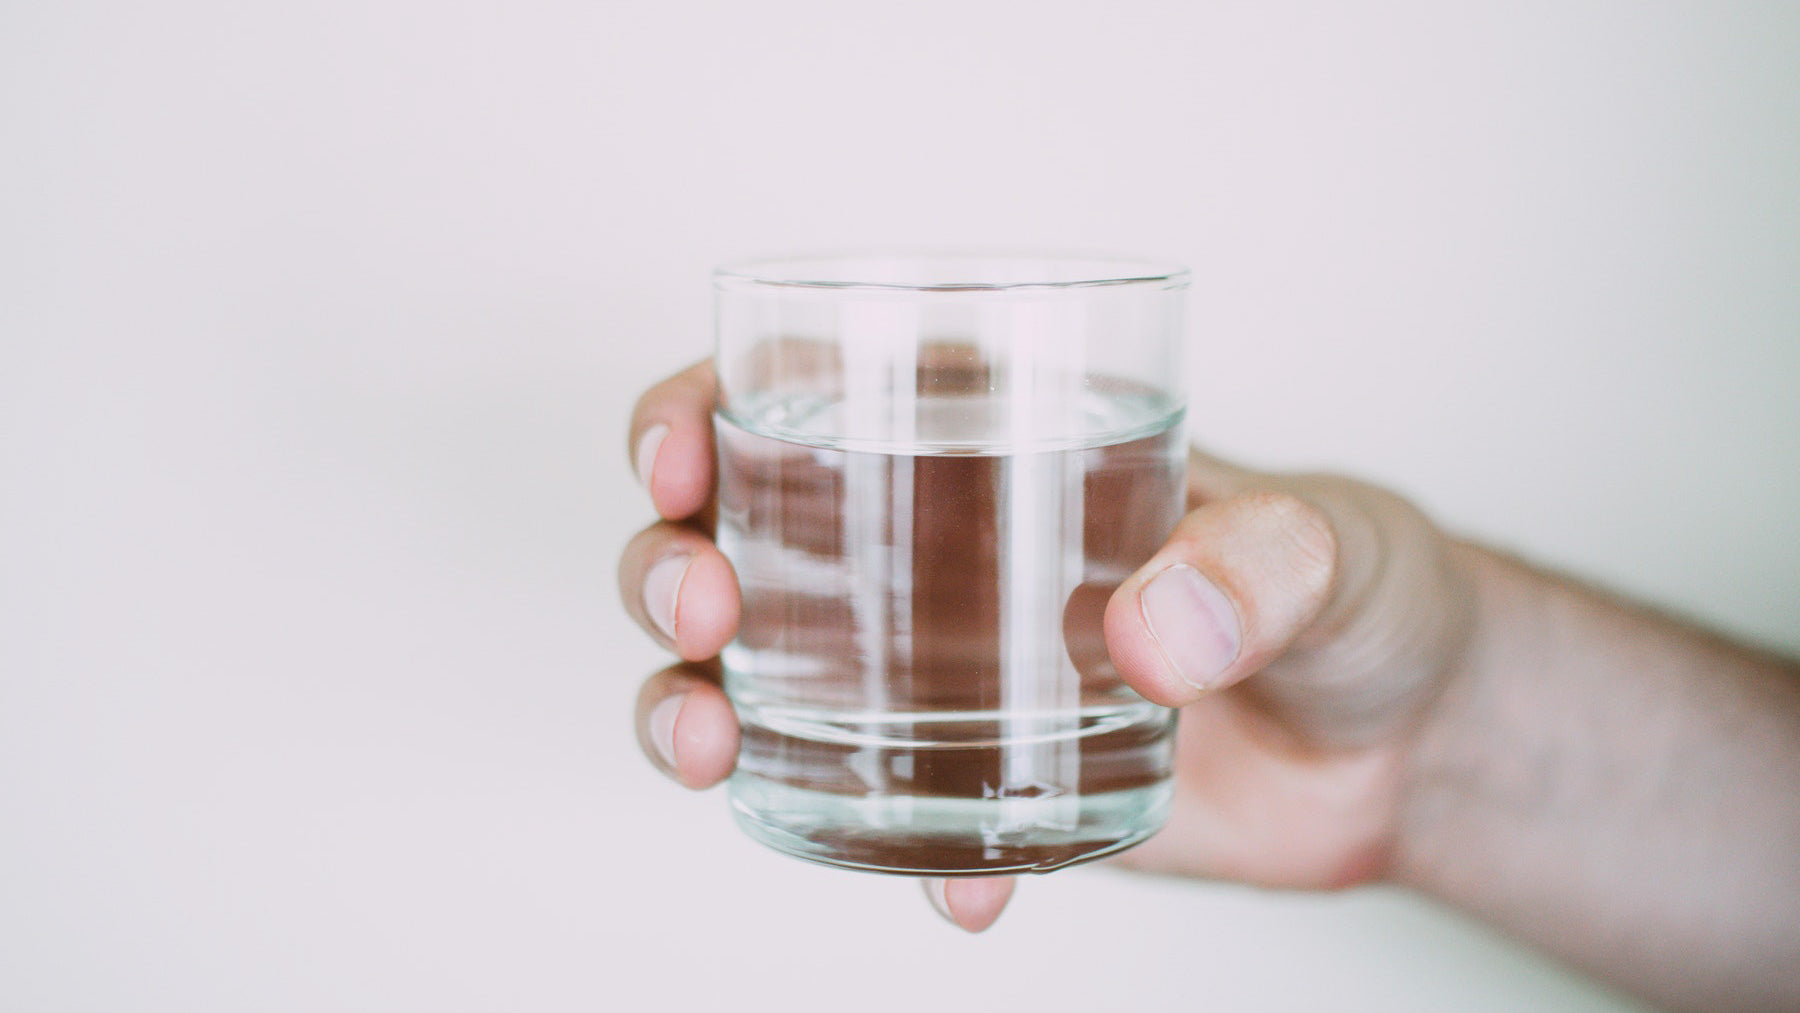 a hand holding a small clear glass of water to represent a healthy sober lifestyle